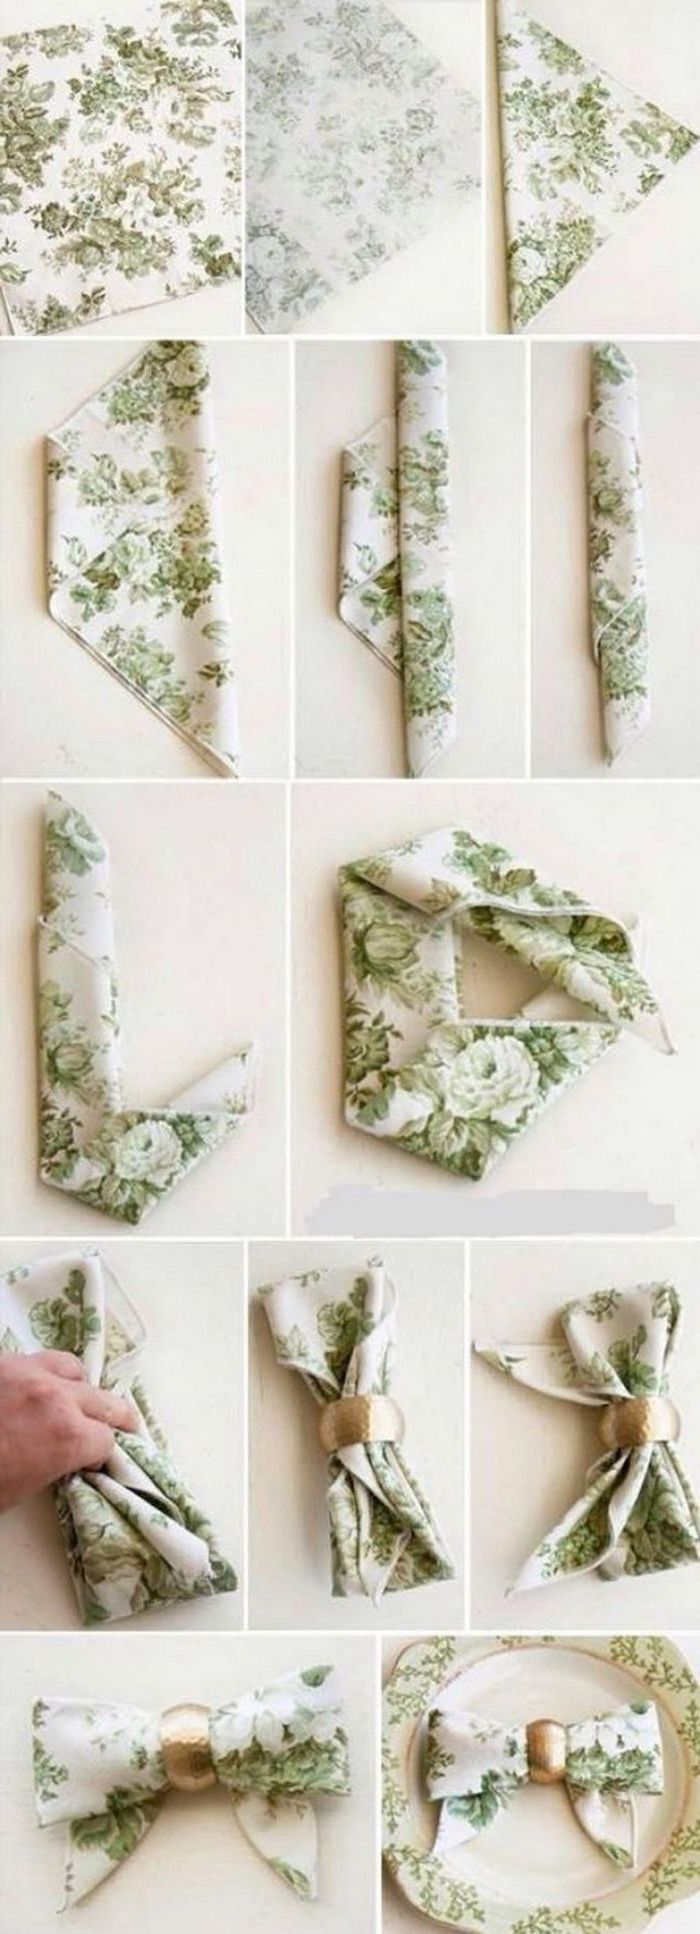 paper napkin folding, green floral napkin, in the shape of a bow, golden ring around it, diy tutorial, step by step